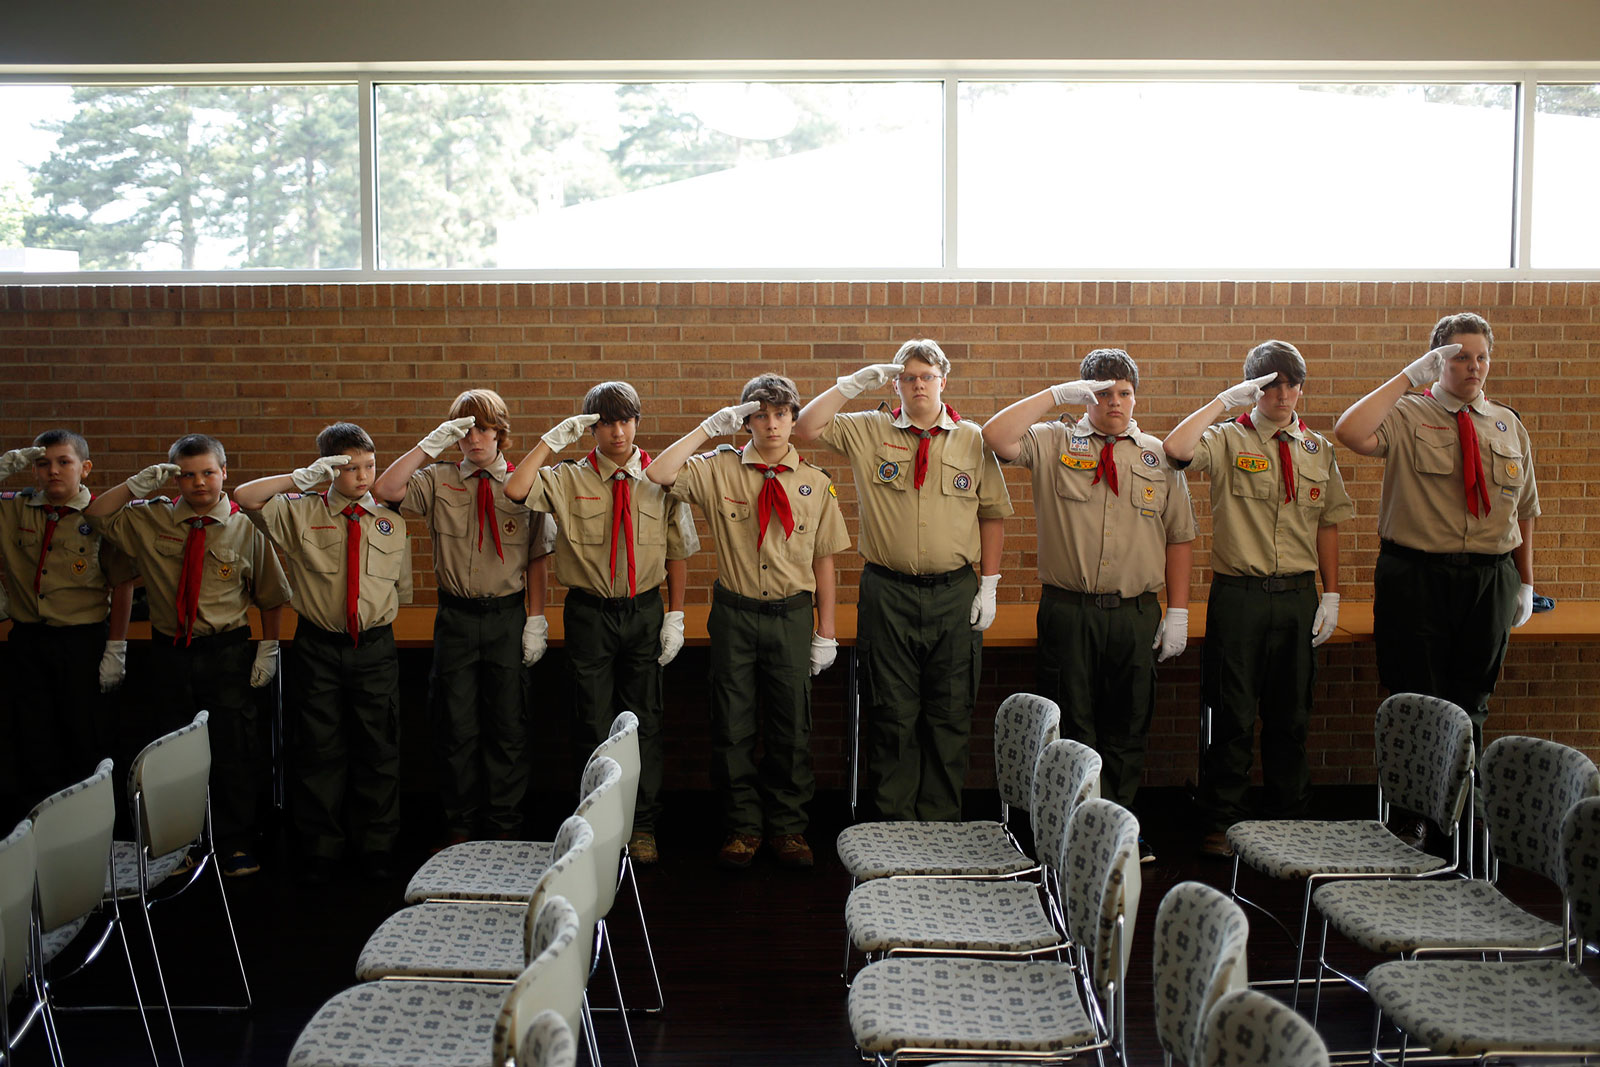 Boy Scouts from Troop 5 practice saluting at an event at Hempstead Hall in Hope, Ark.